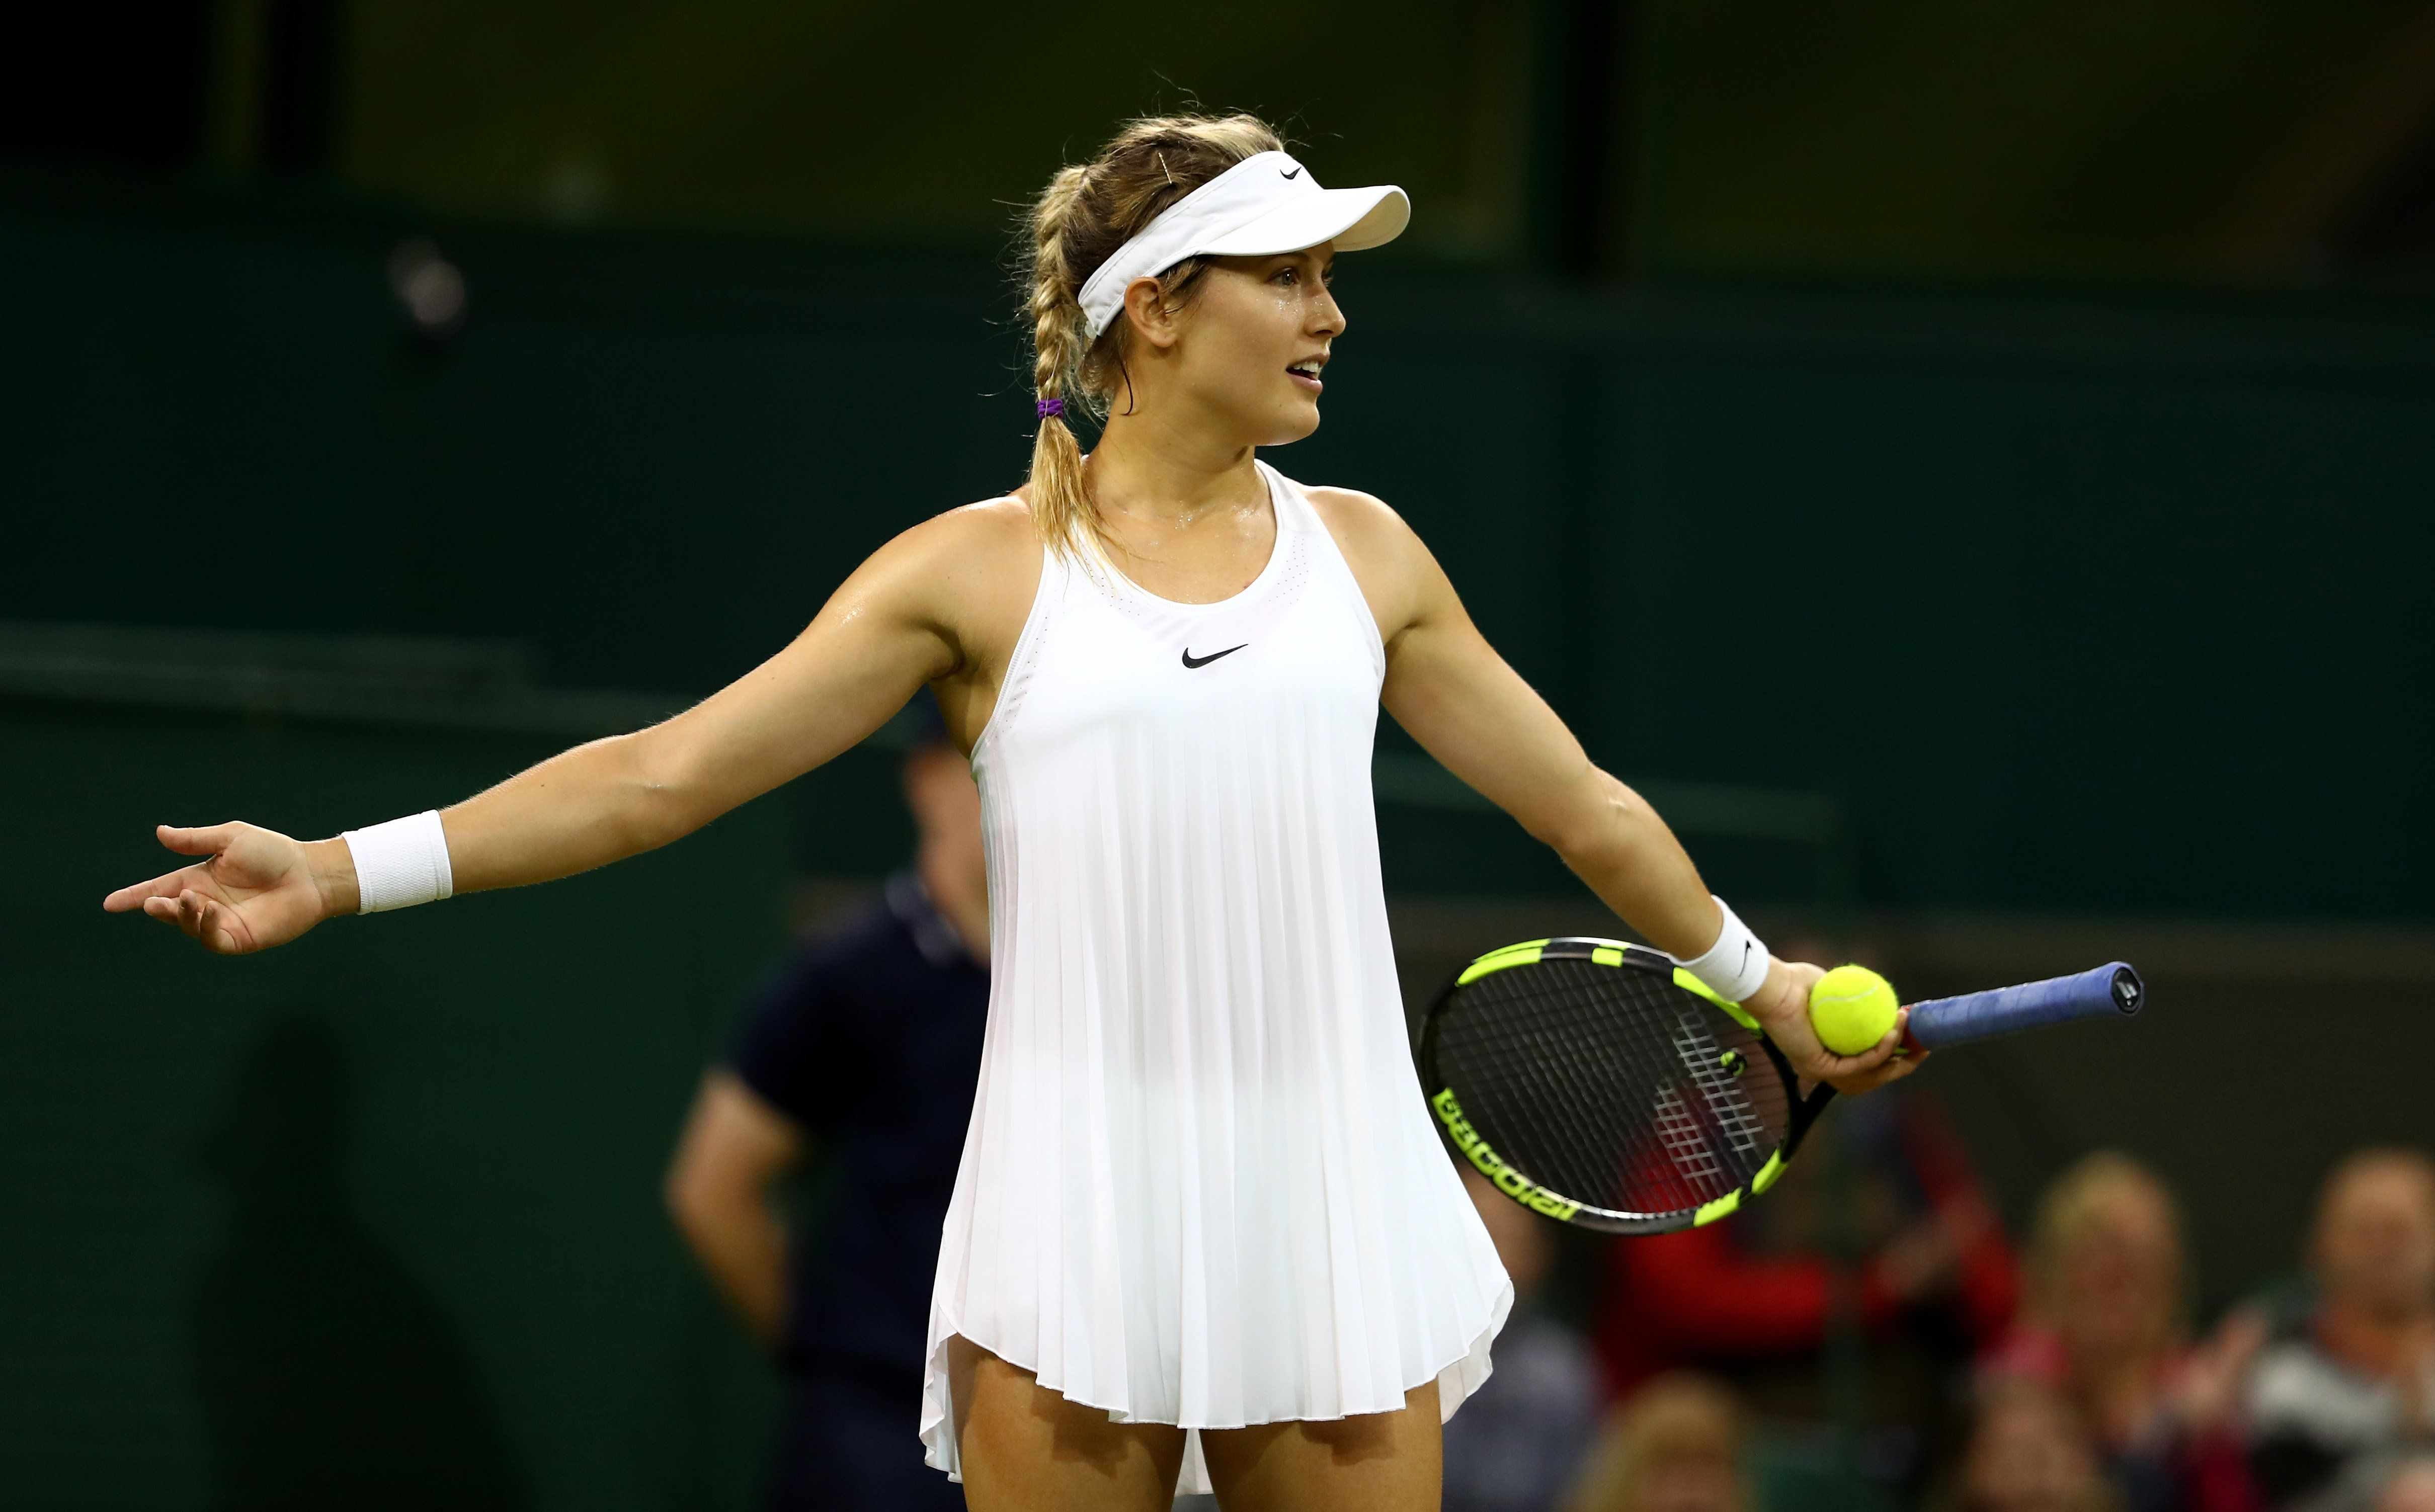 This Wimbledon Tennis Dress Is Making Some Players